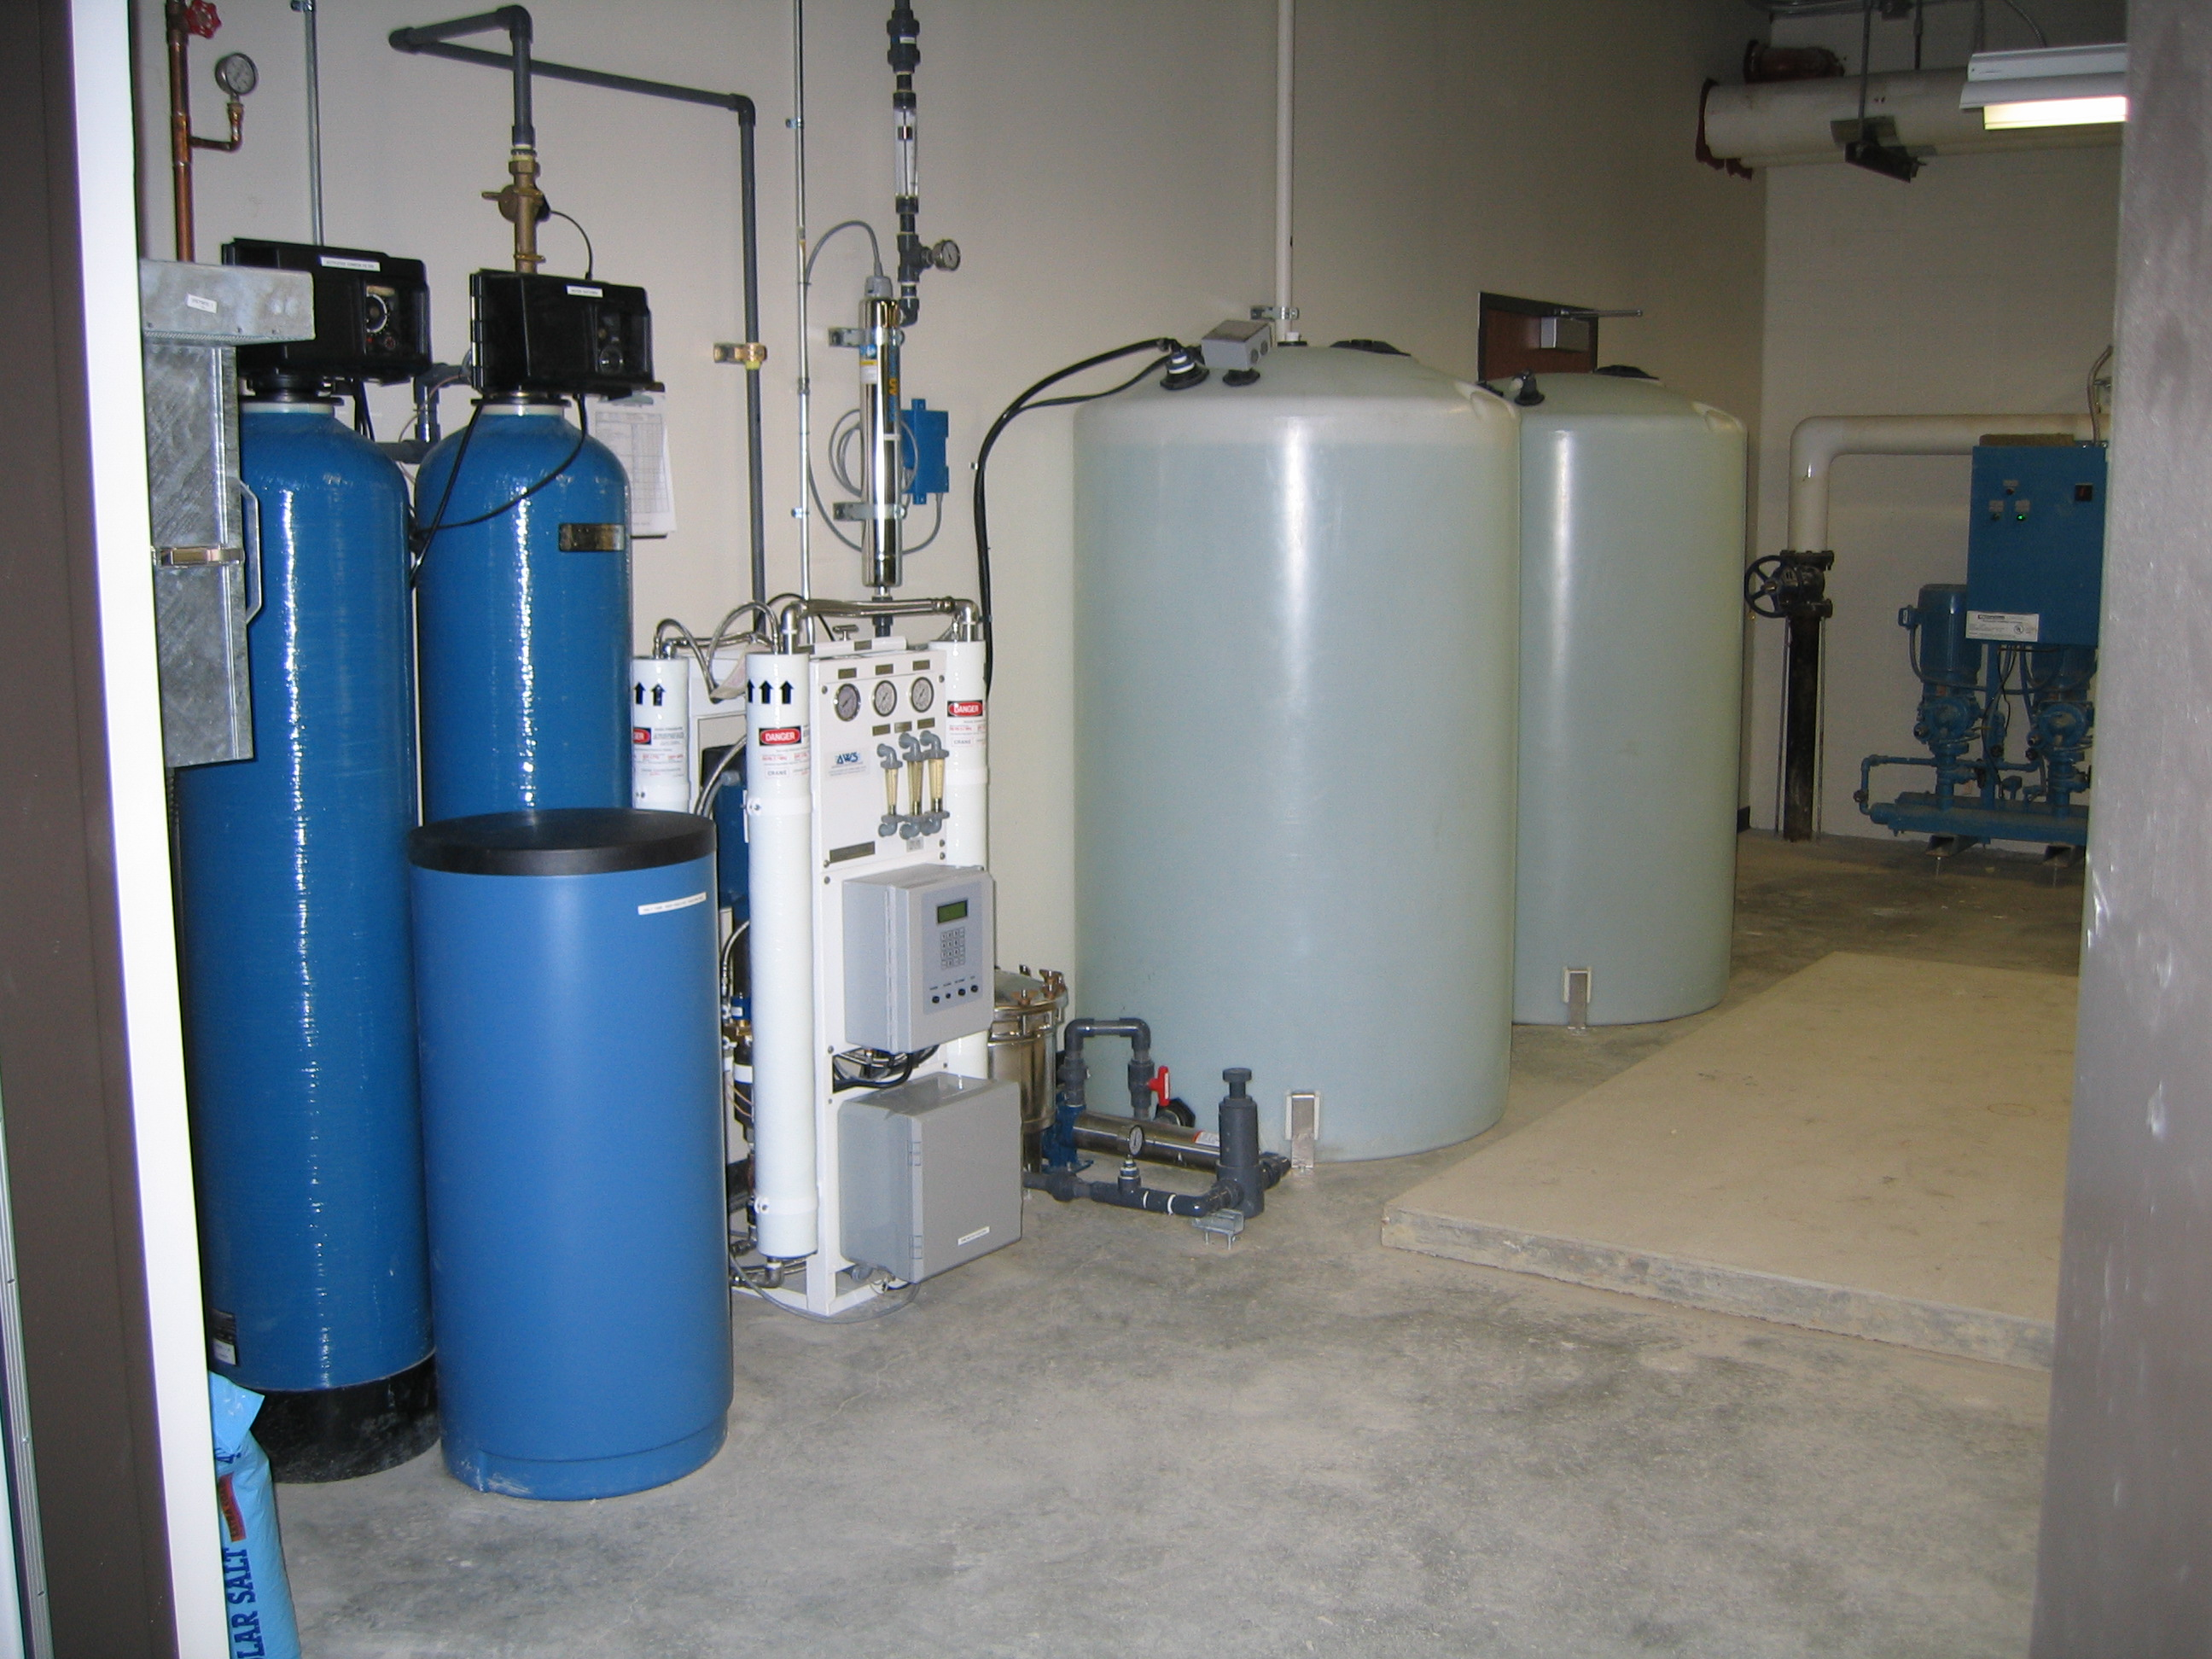 Clean Water Systems Amp Stores Inc Introduces New Well Water